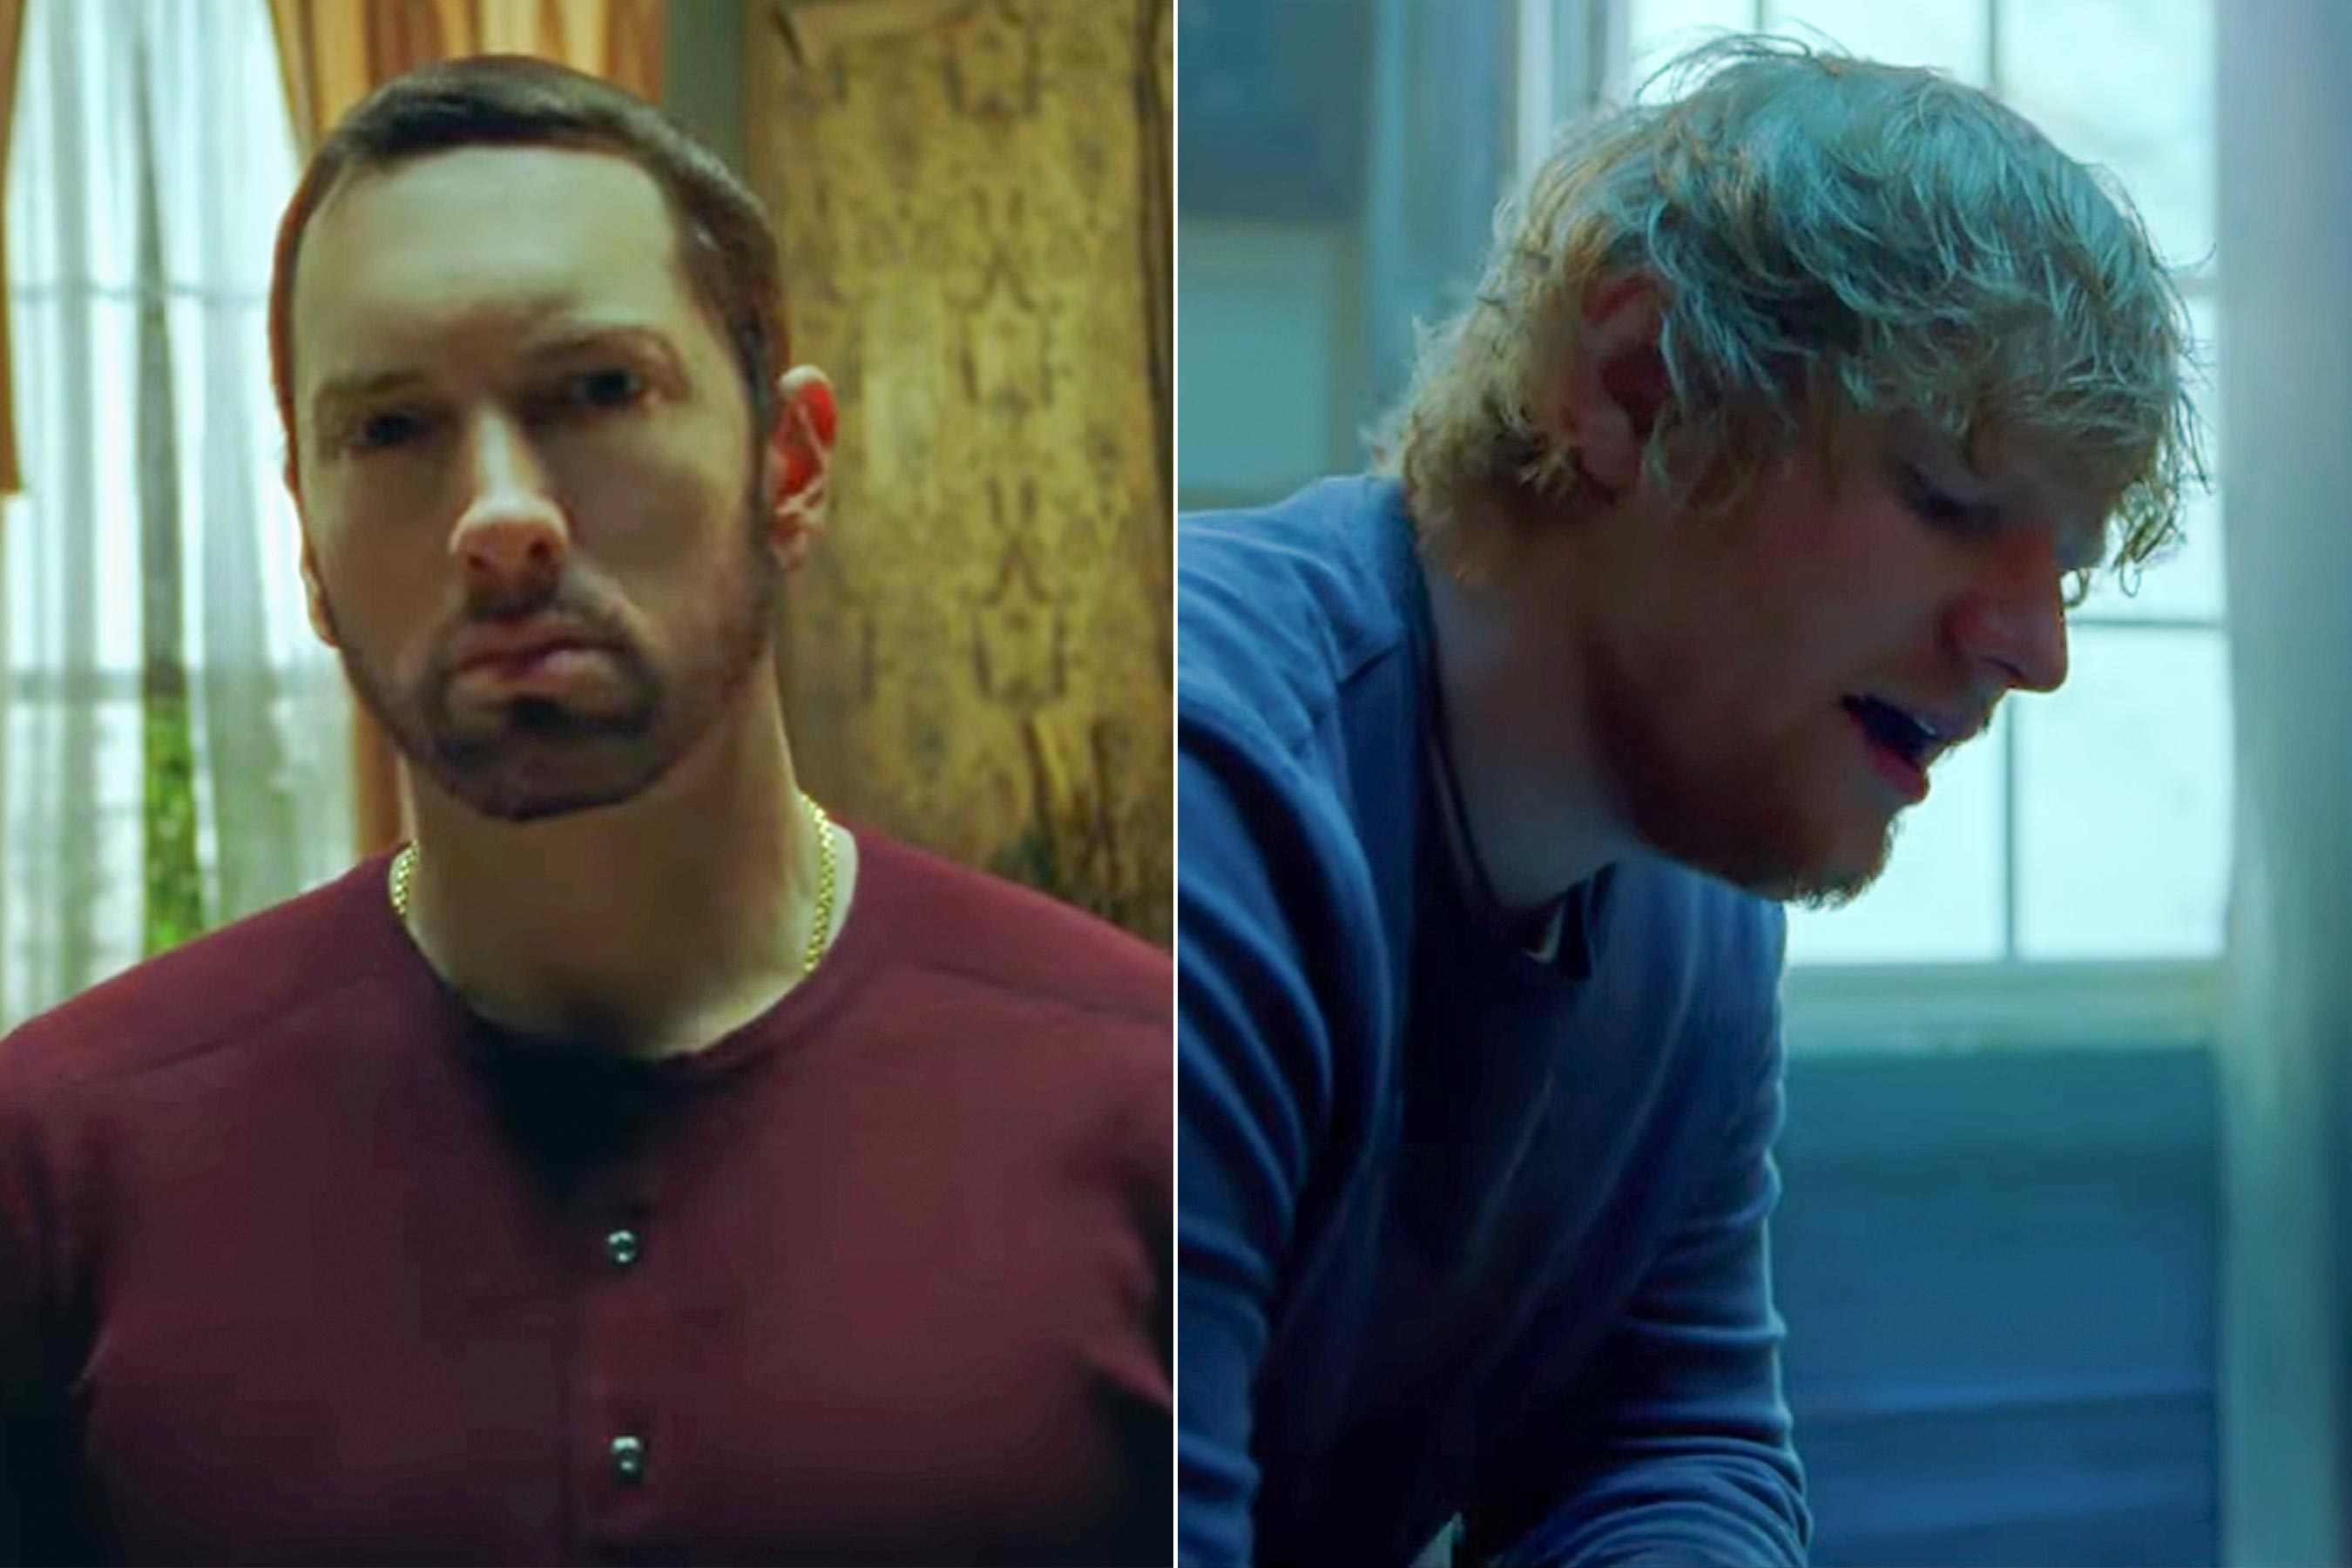 Eminem shares painful River video starring Ed Sheeran